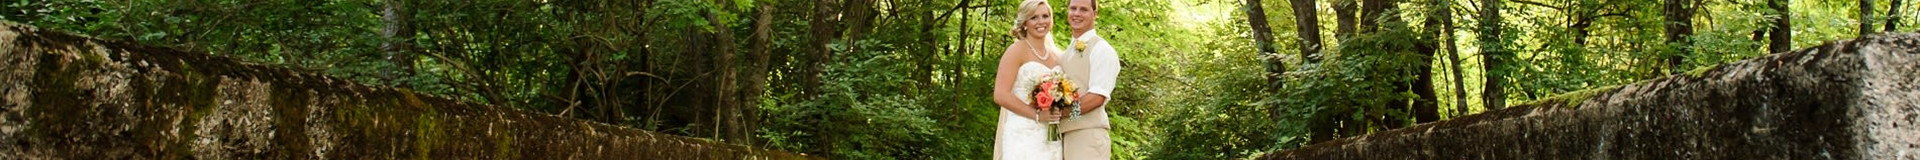 Venue Options & Directions | Smith Event Centers